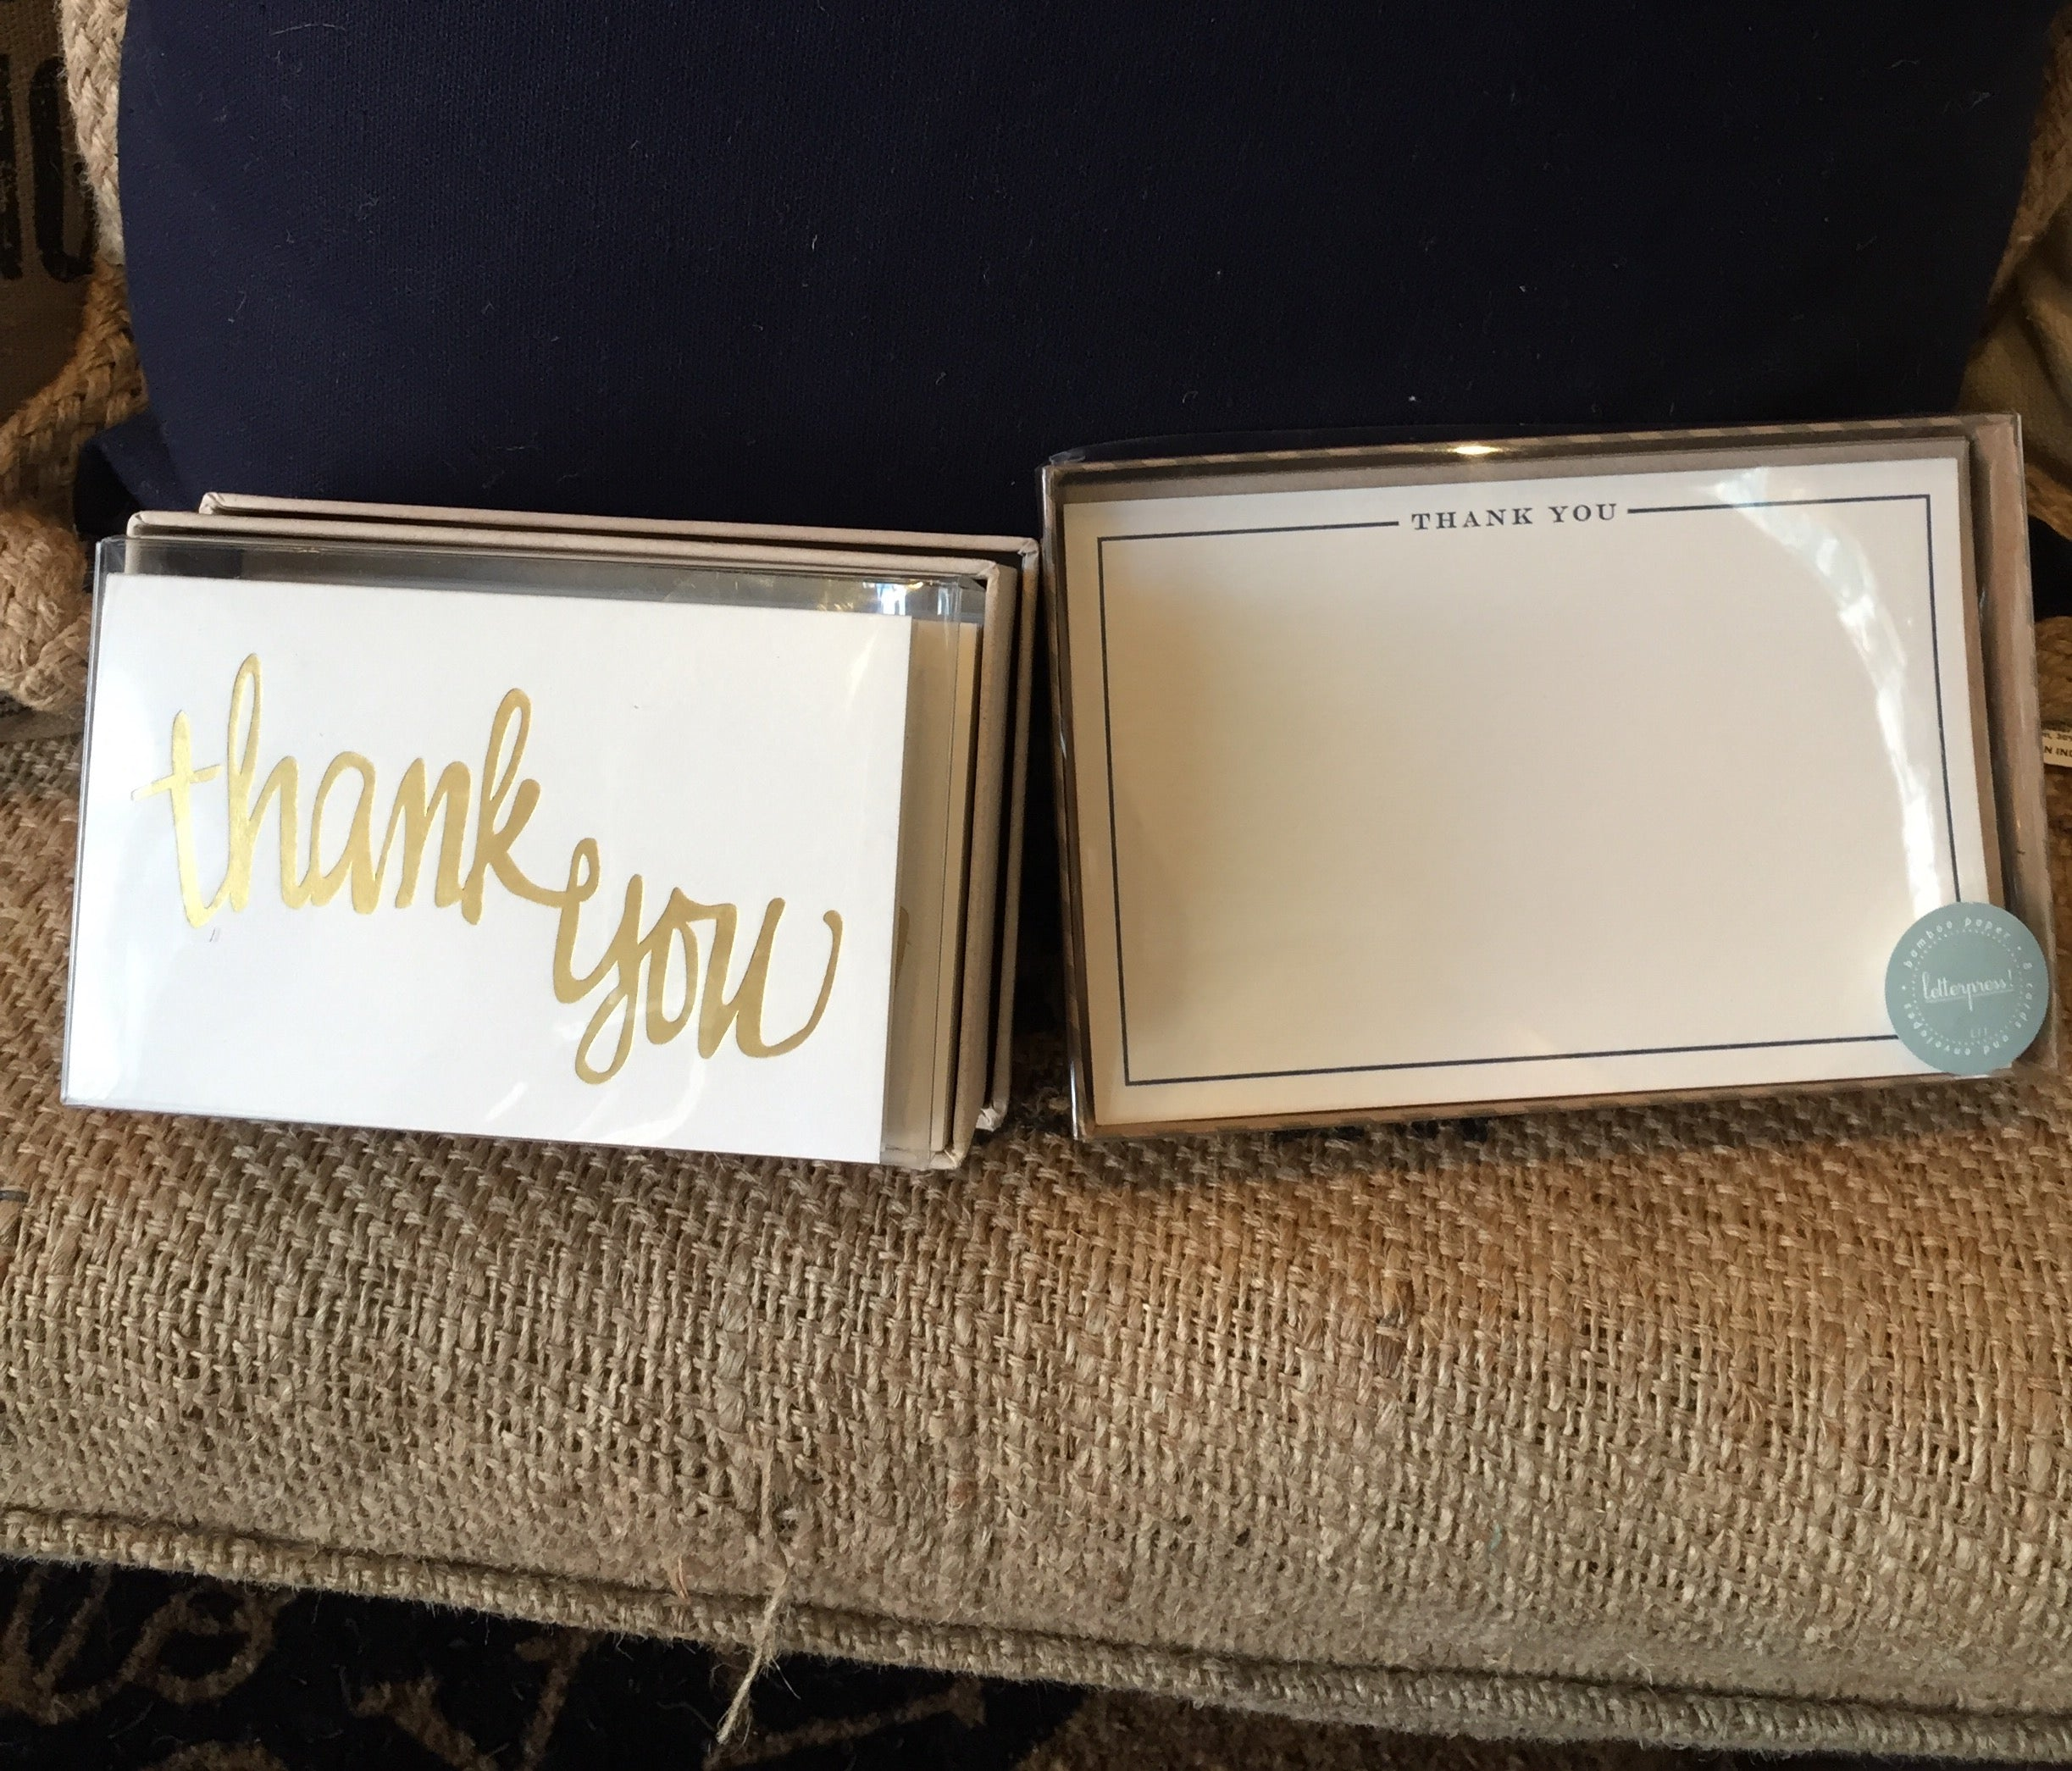 Set your graduate up for successfully displaying the good manners you've taught them. :) Everyone appreciates a handwritten thank you card!